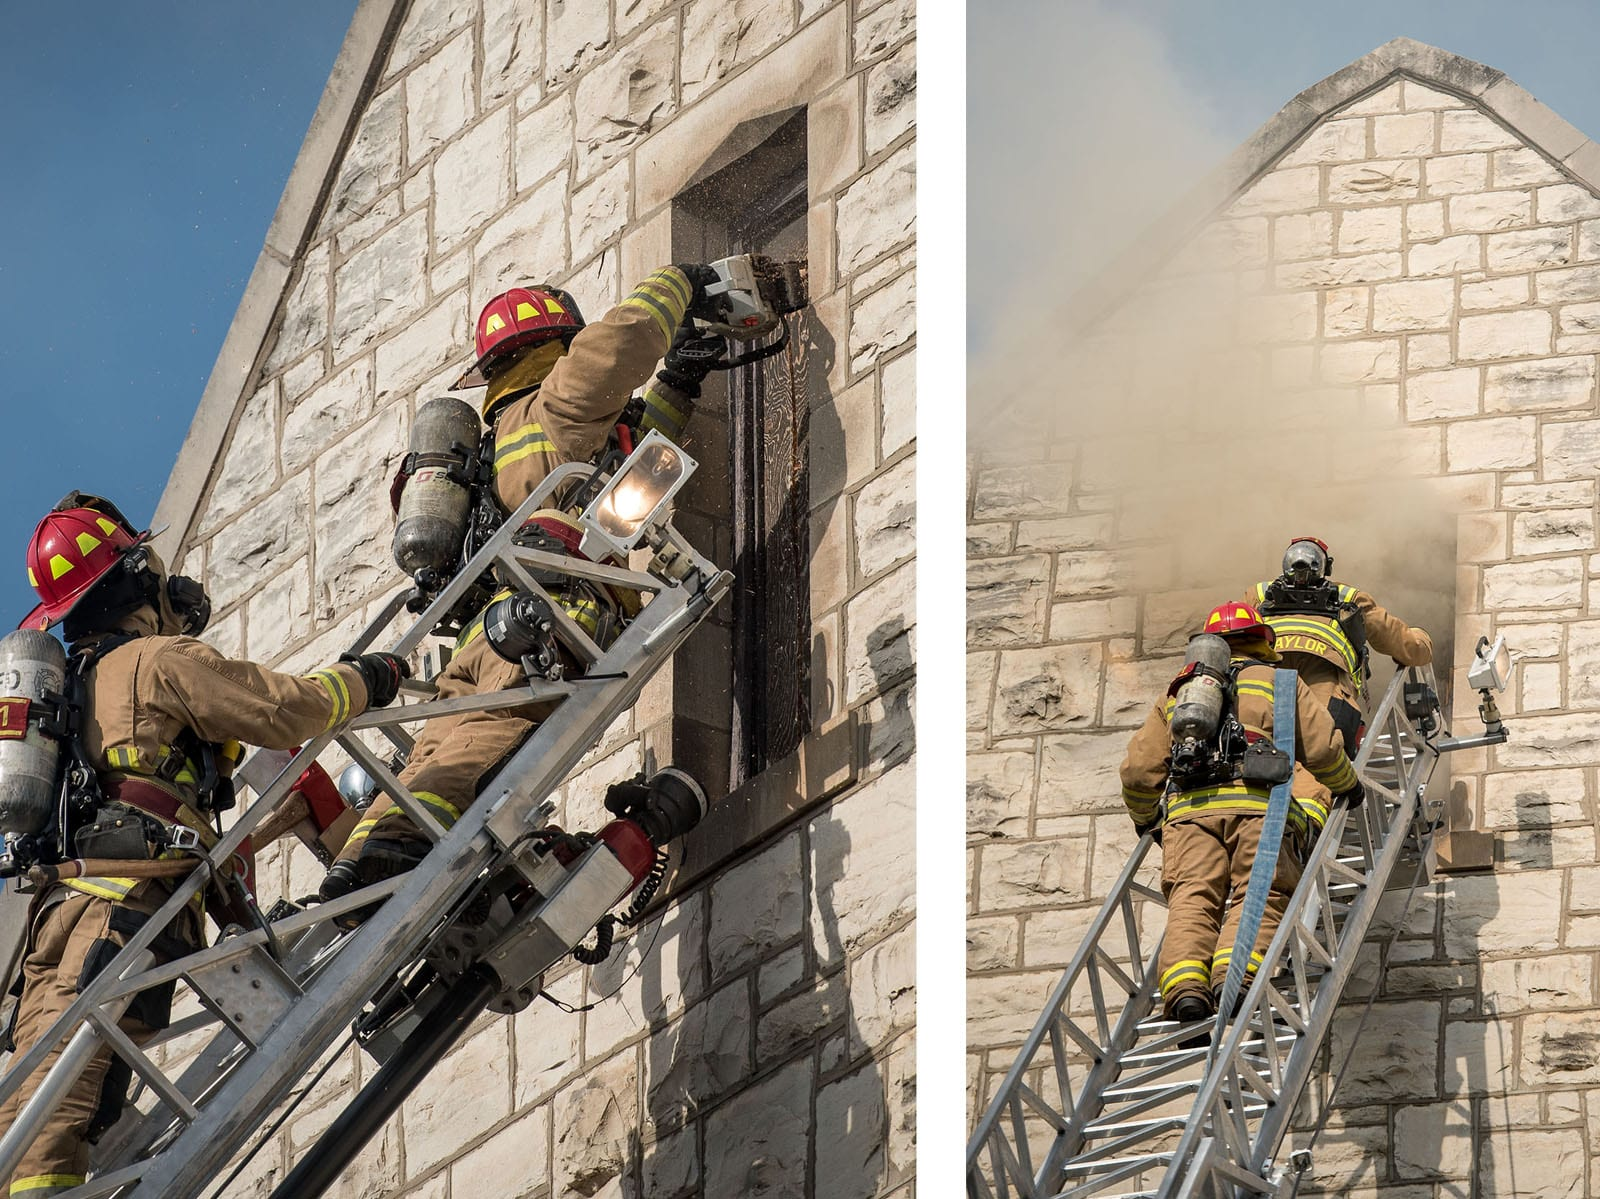 Two firefighters in full protective gear and oxygen masks stand at the top of a metal extension ladder while accessing a small window in the peak of a limestone building.